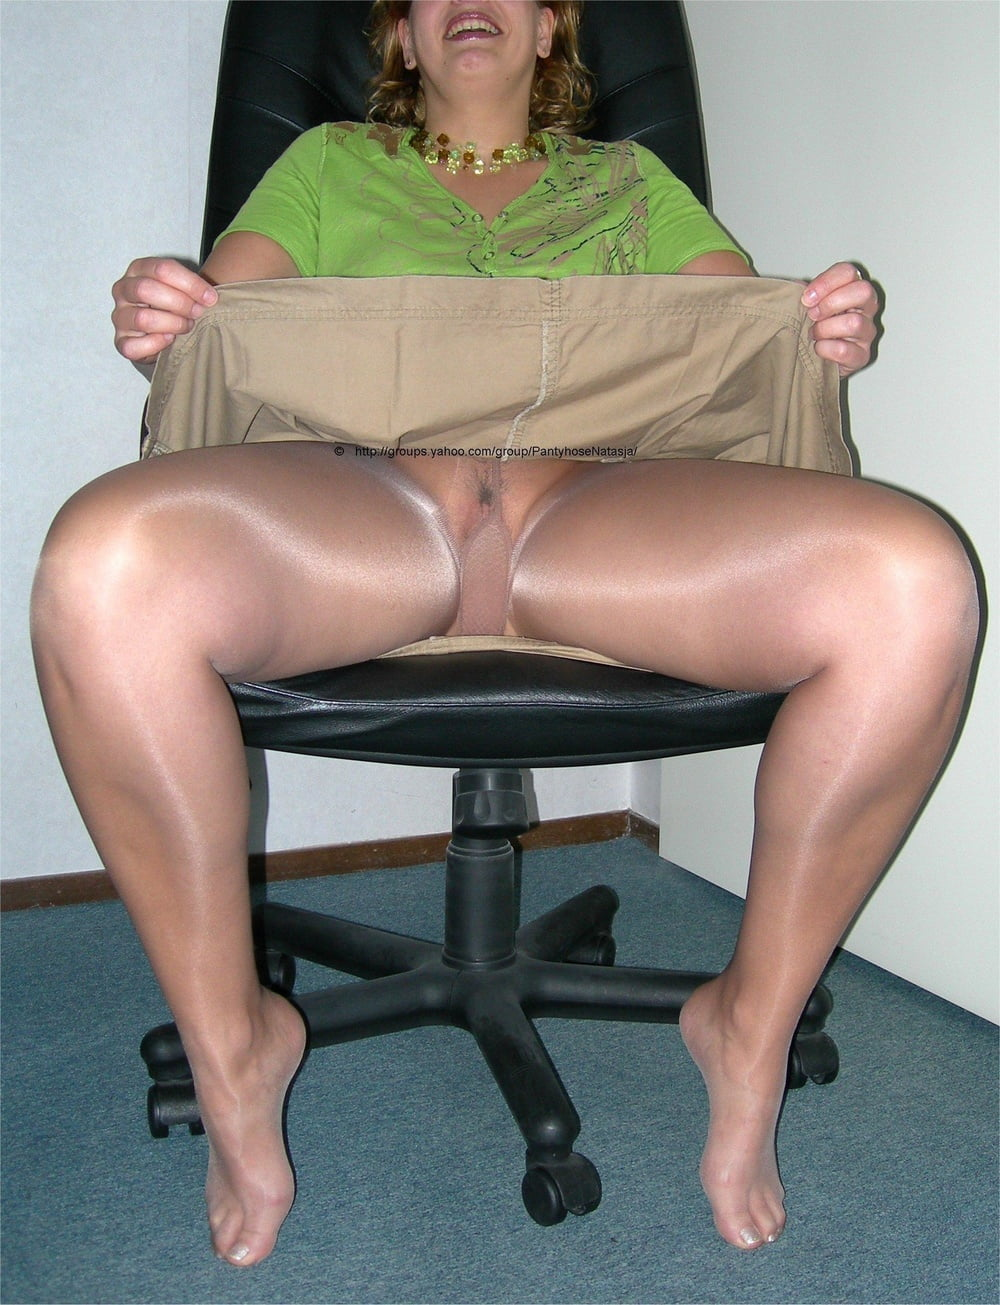 nudes-upskirt-moms-and-pantyhose-wives-sexy